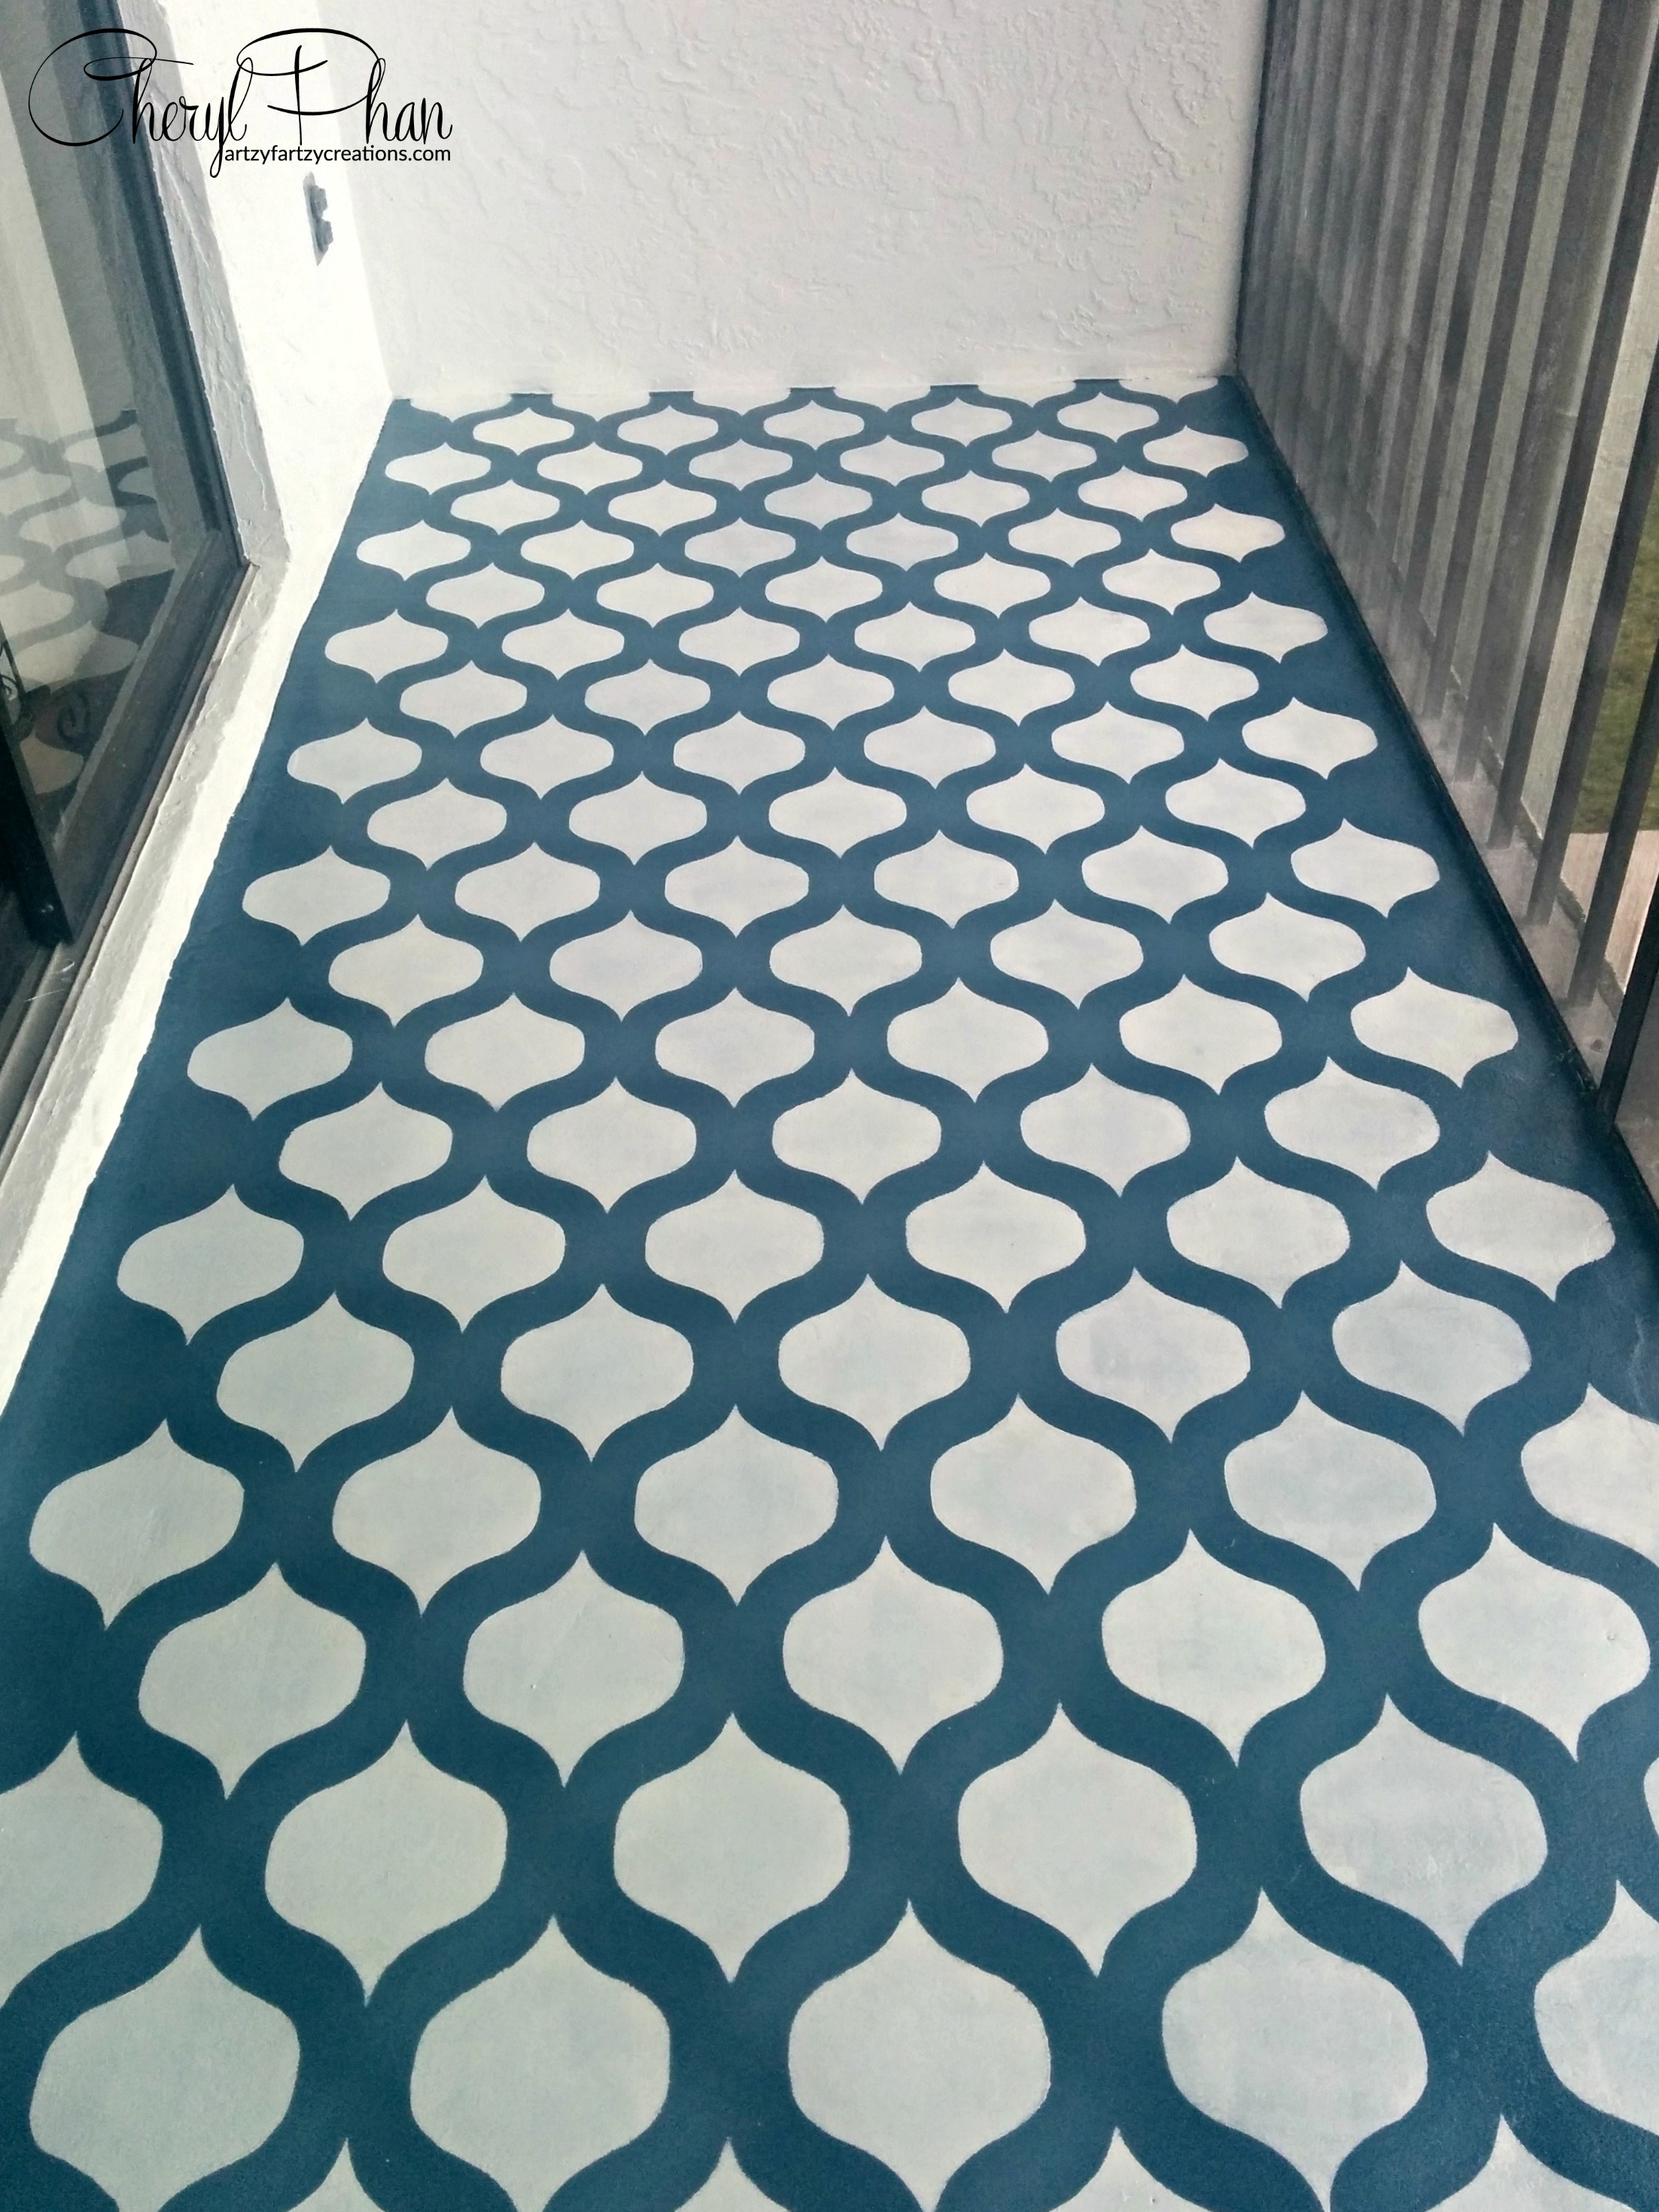 How To Create a Stenciled Floor